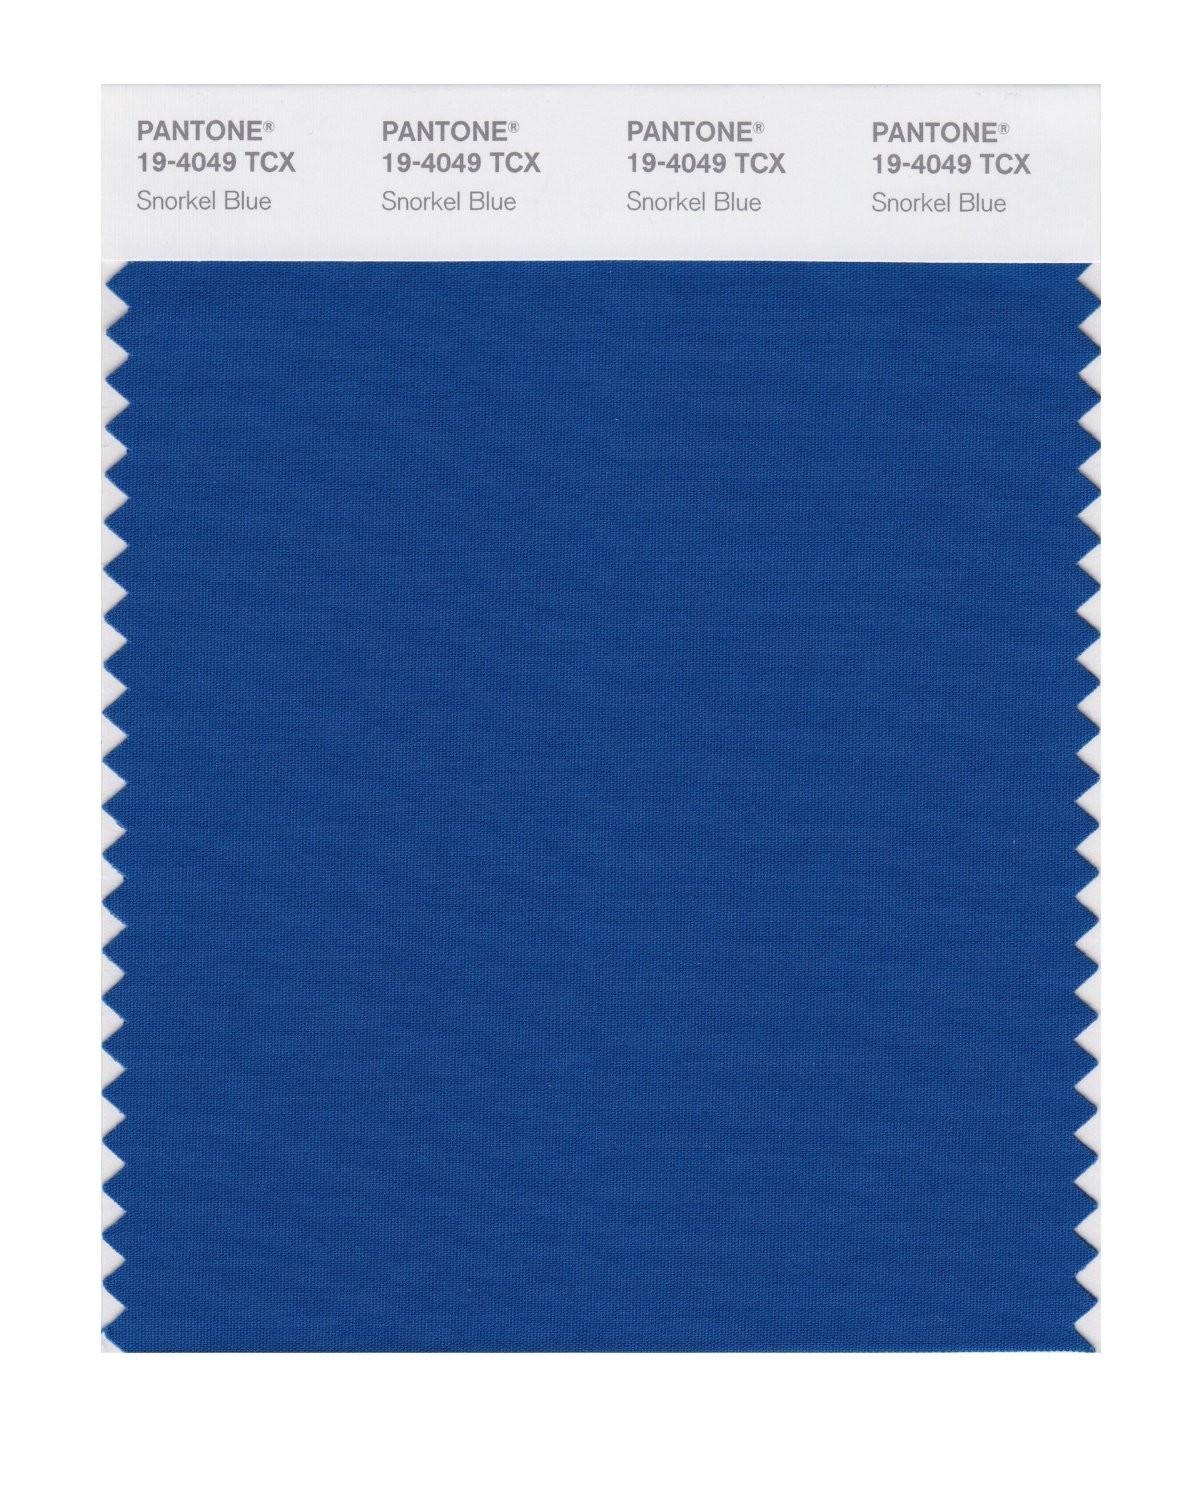 Pantone 19-4049 TCX Swatch Card Snorkel Blue